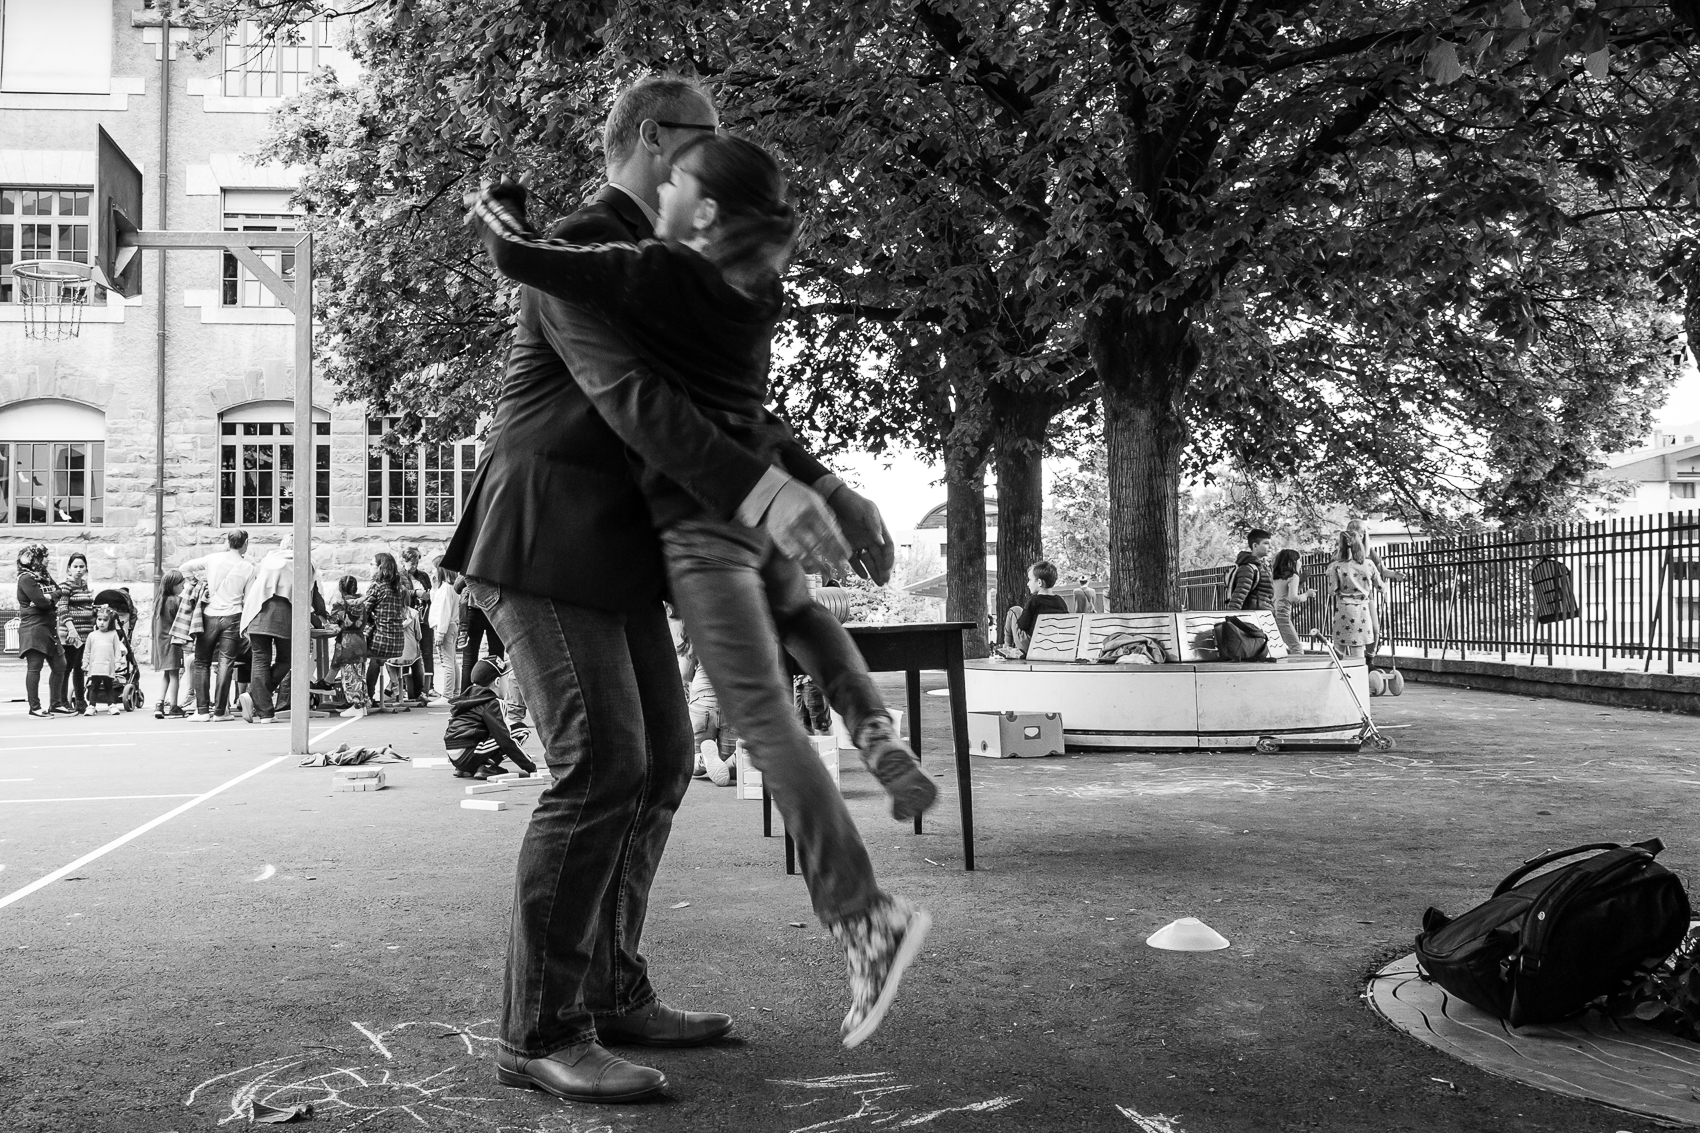 Jumping into dad's arms at the end of the day is a joyful ritual.